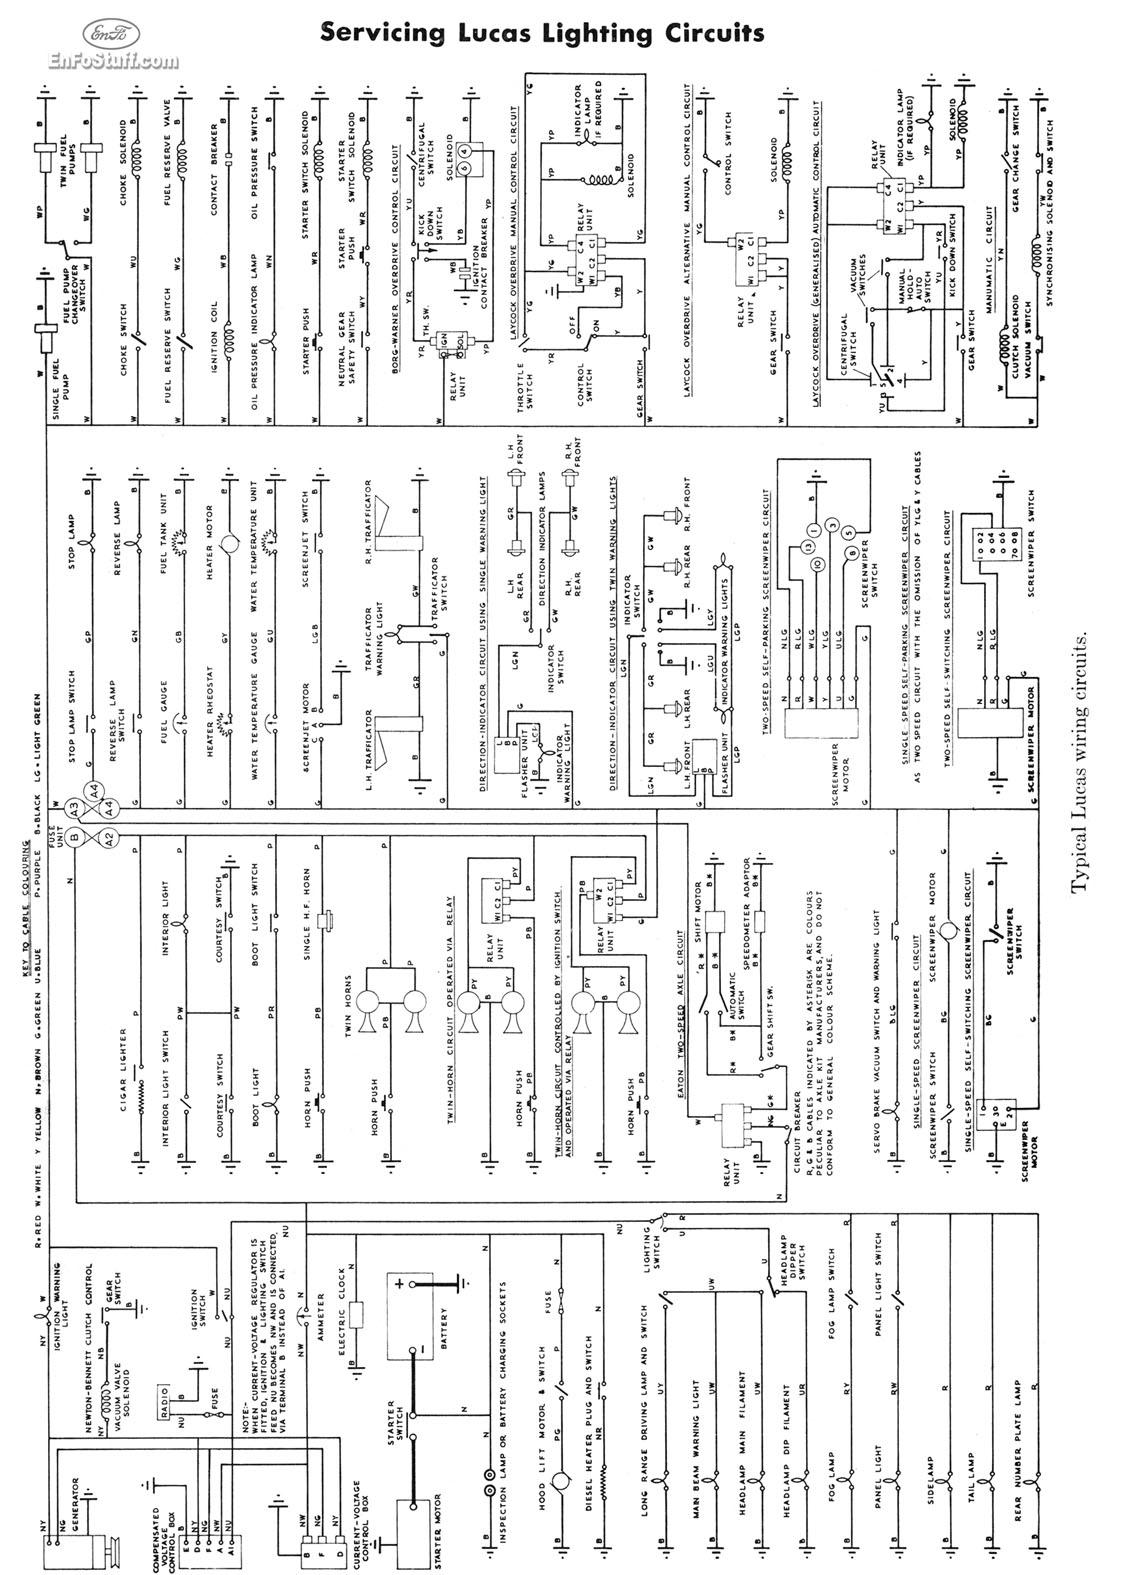 Typical Lucaswiring Diagram Schematic